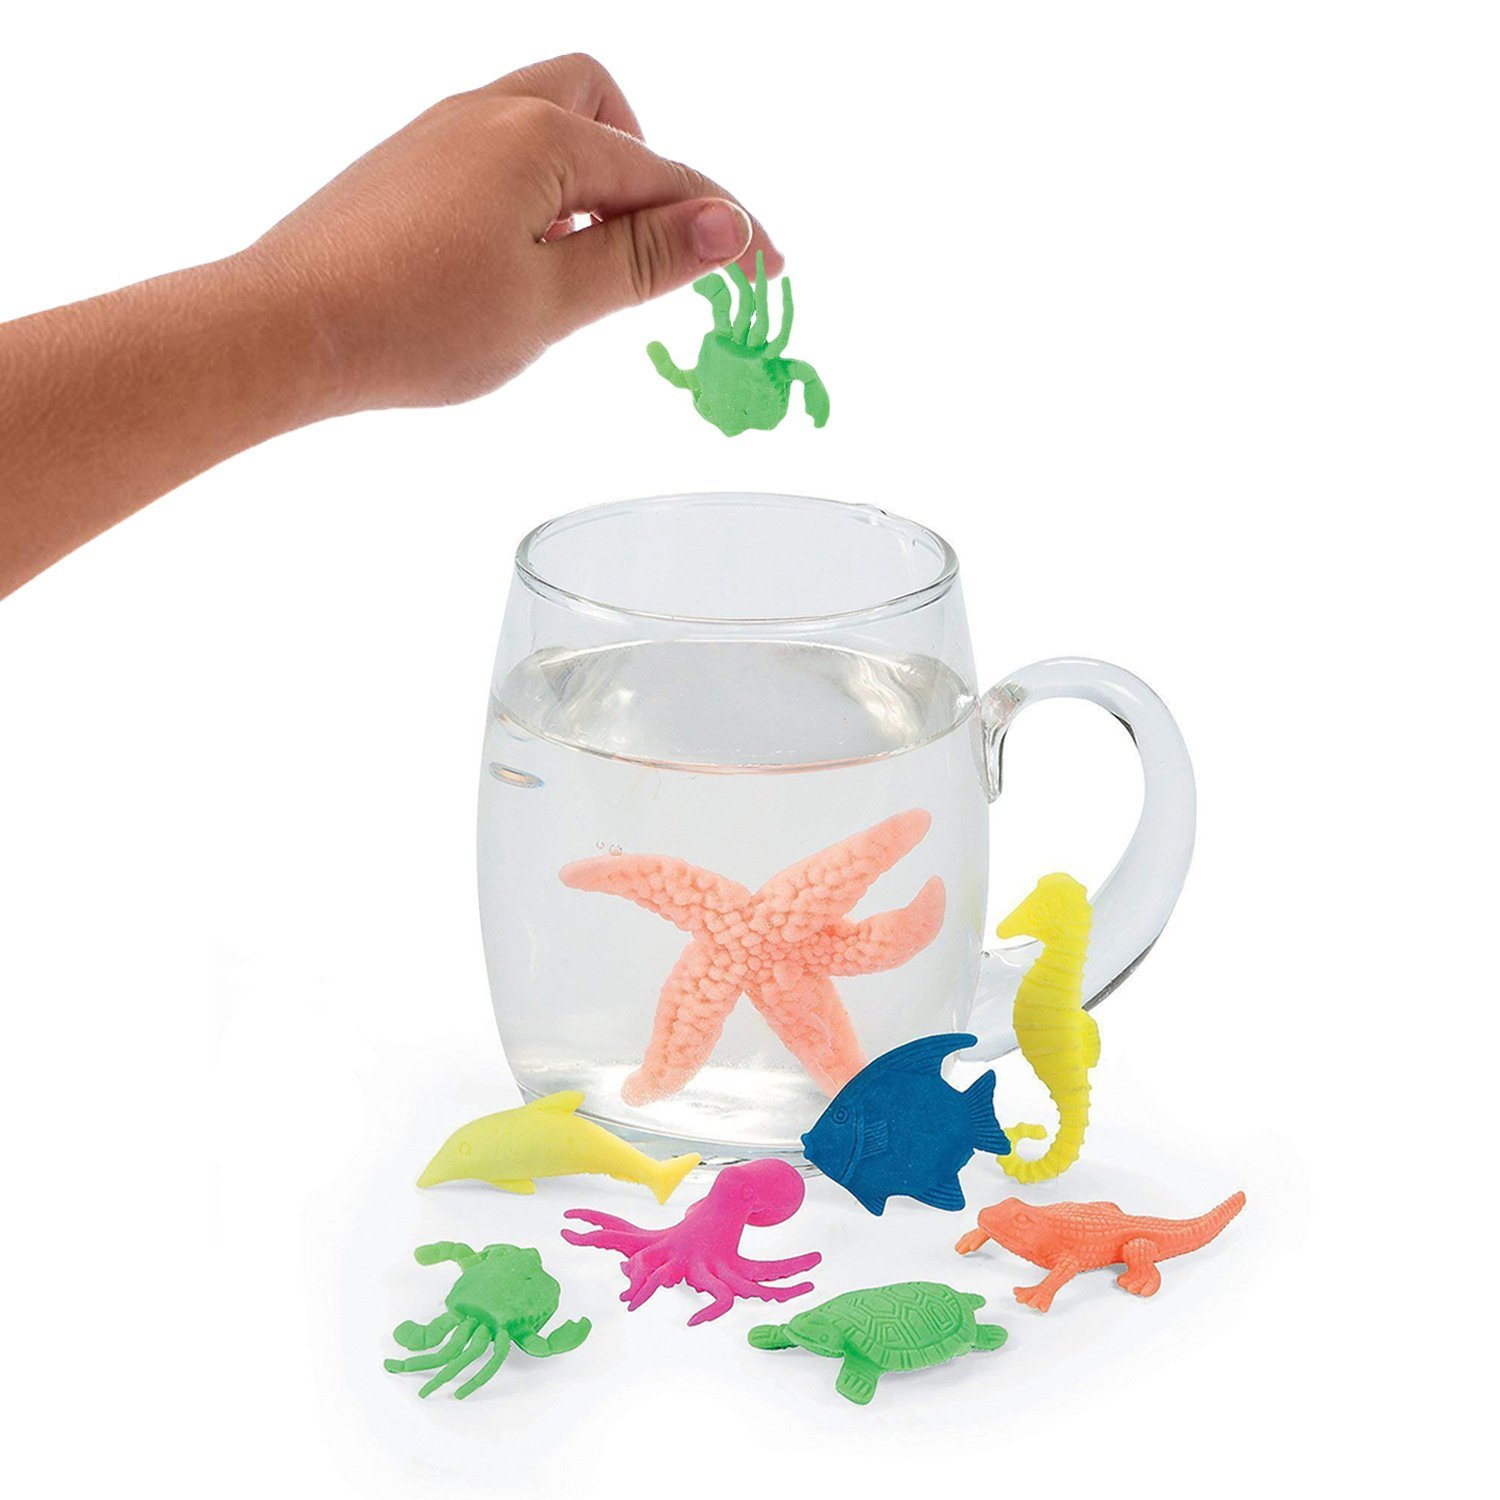 Kidsco Growing Animals Sea Life - Pack of 12 Creatures Figures, 1.25'' to 2'', Assorted Colored Animals - Grows Like Magic in Water - Fun Toy for Kids Boys and Girls, Party Favor, Gift, Prize by Kidsco (Image #3)